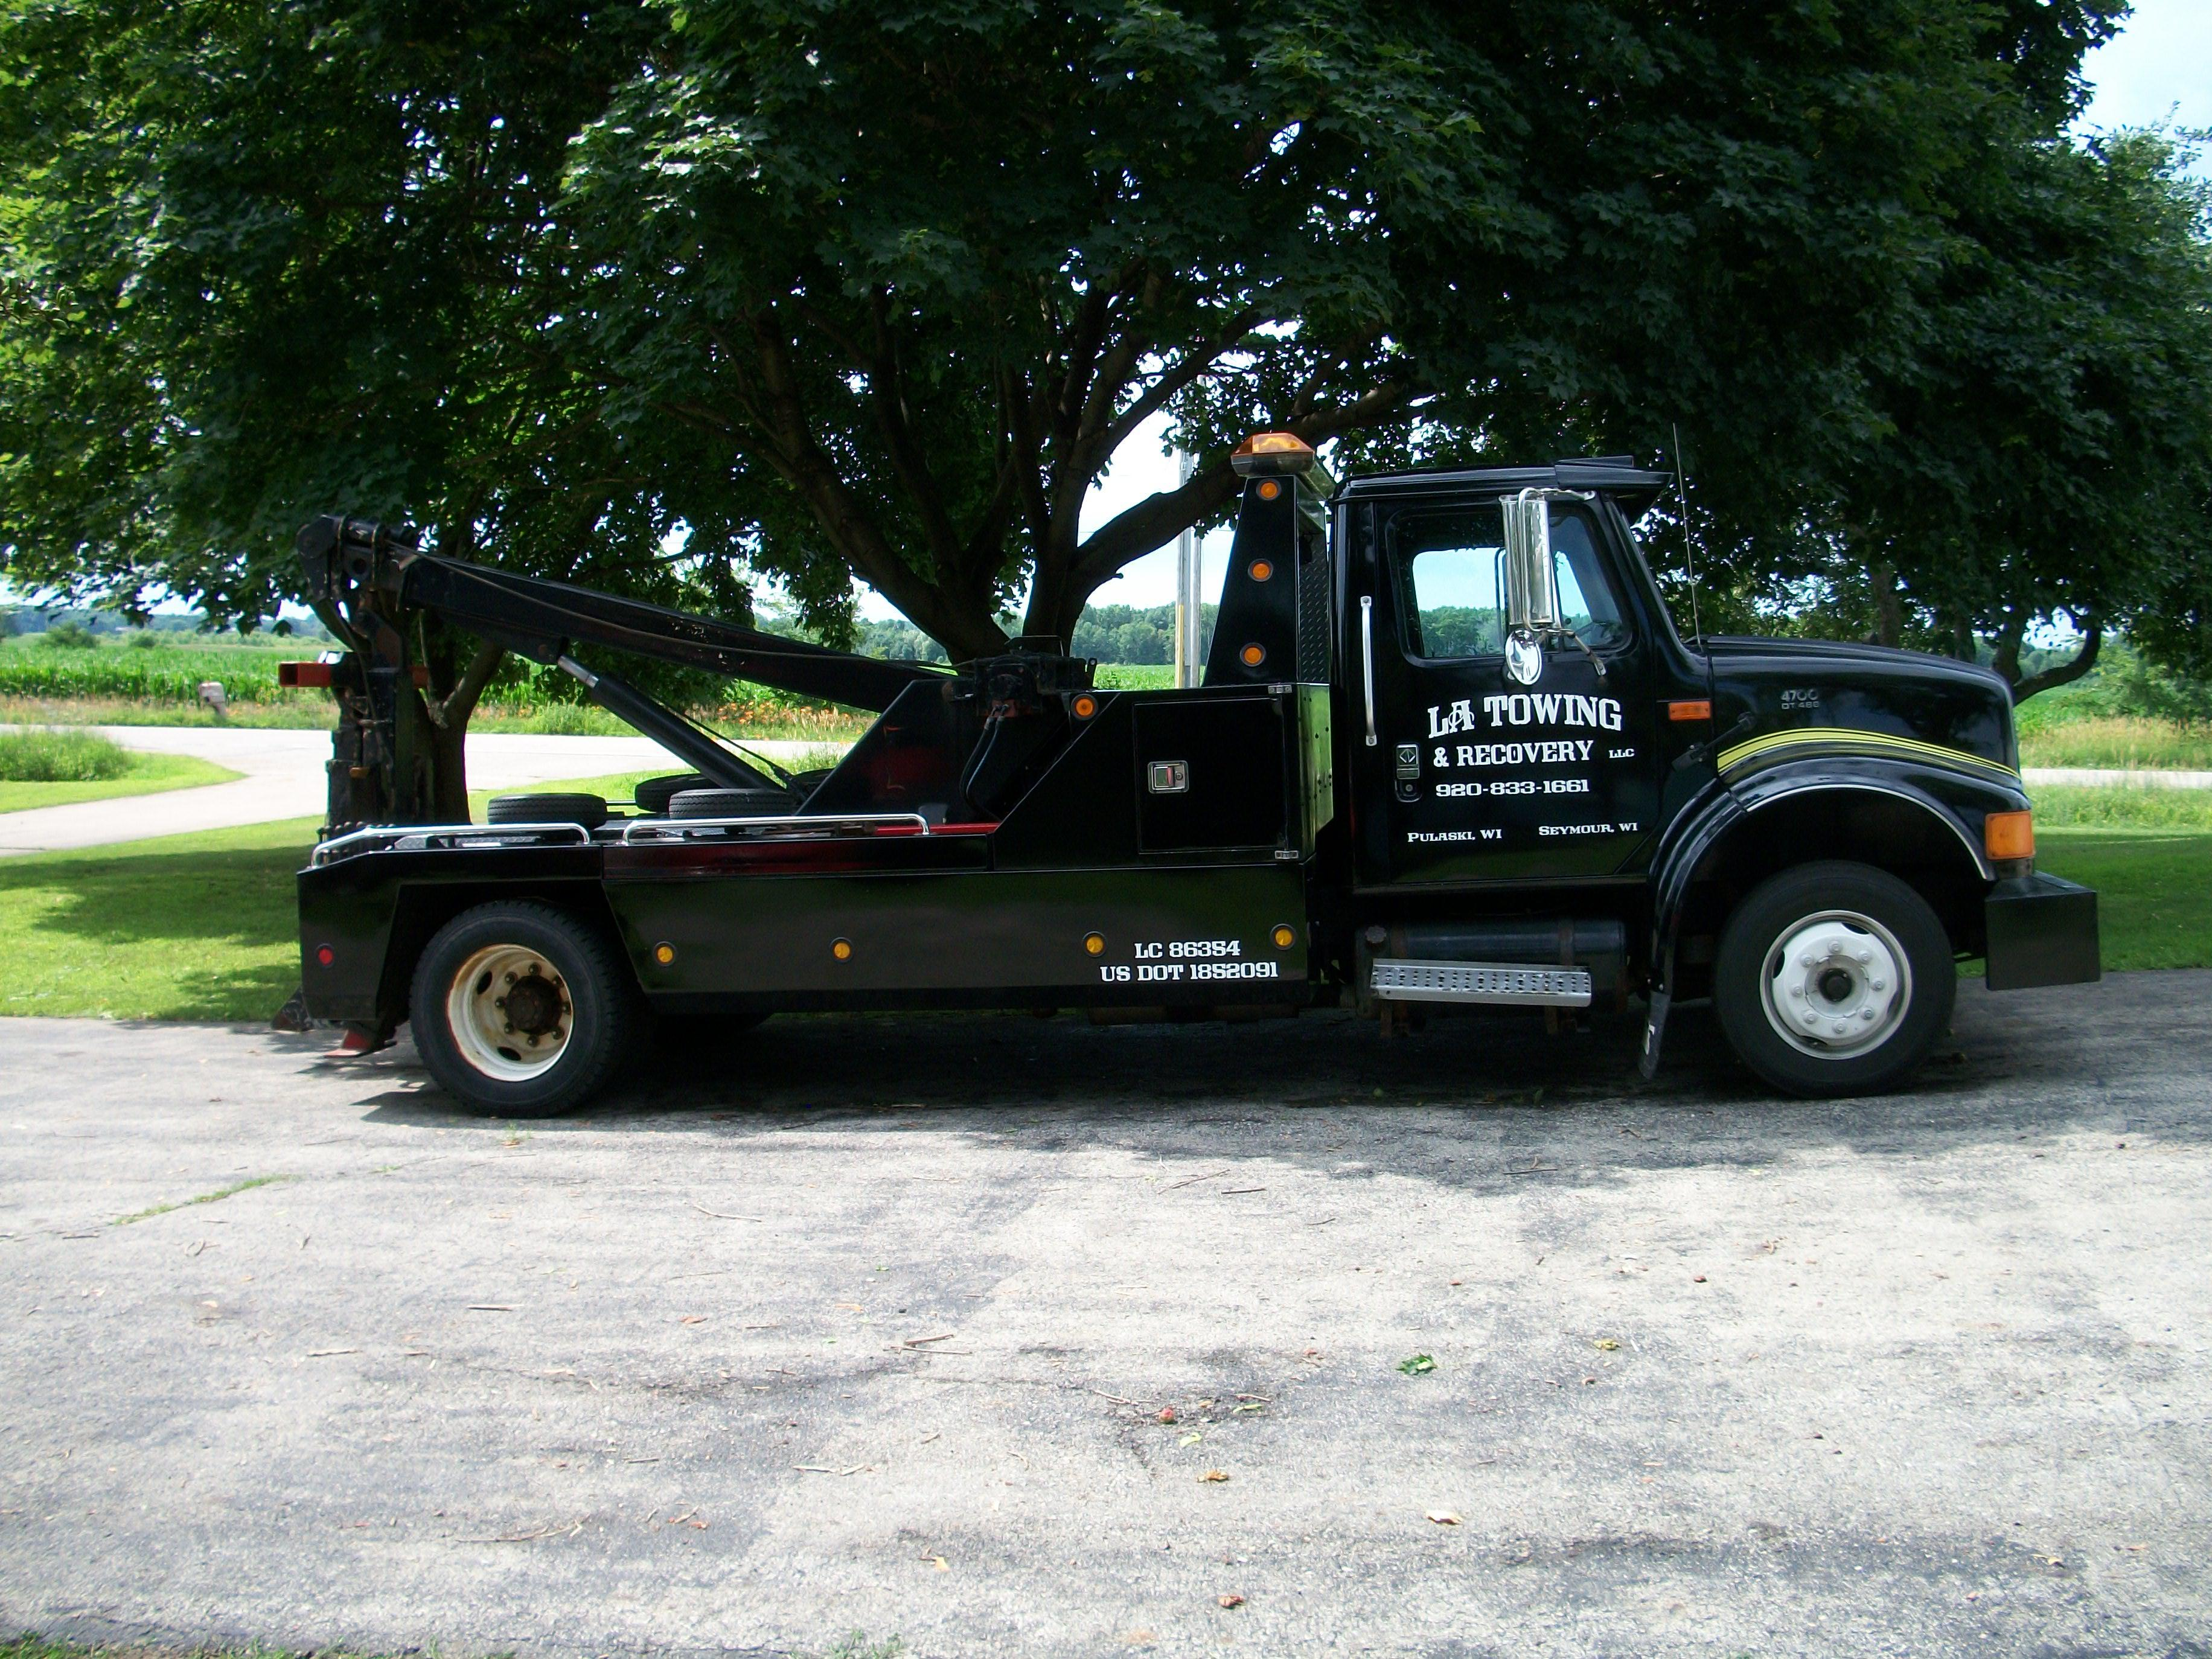 LA Towing & Recovery, LLC image 34